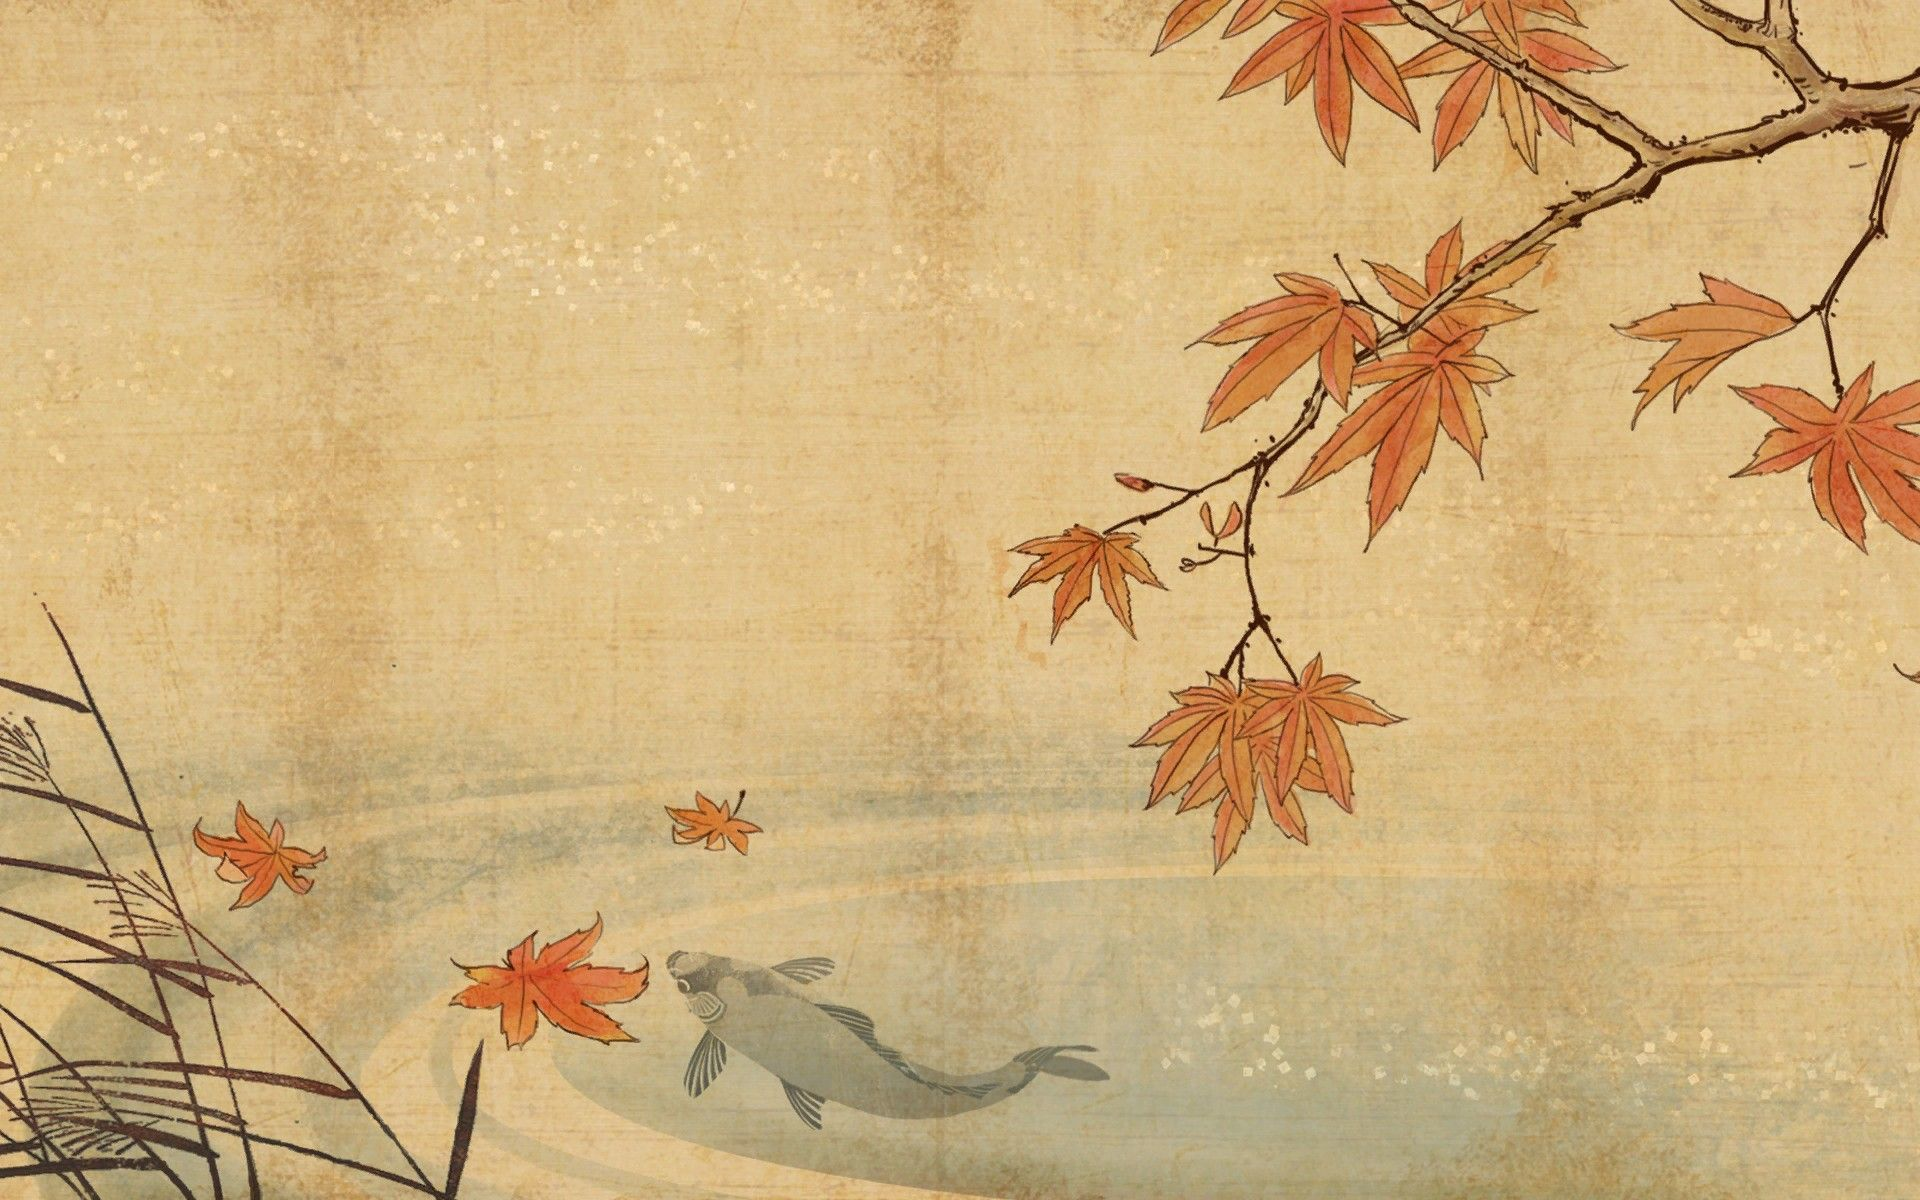 asian art - DriverLayer Search Engine | Japanese Art and Design ...